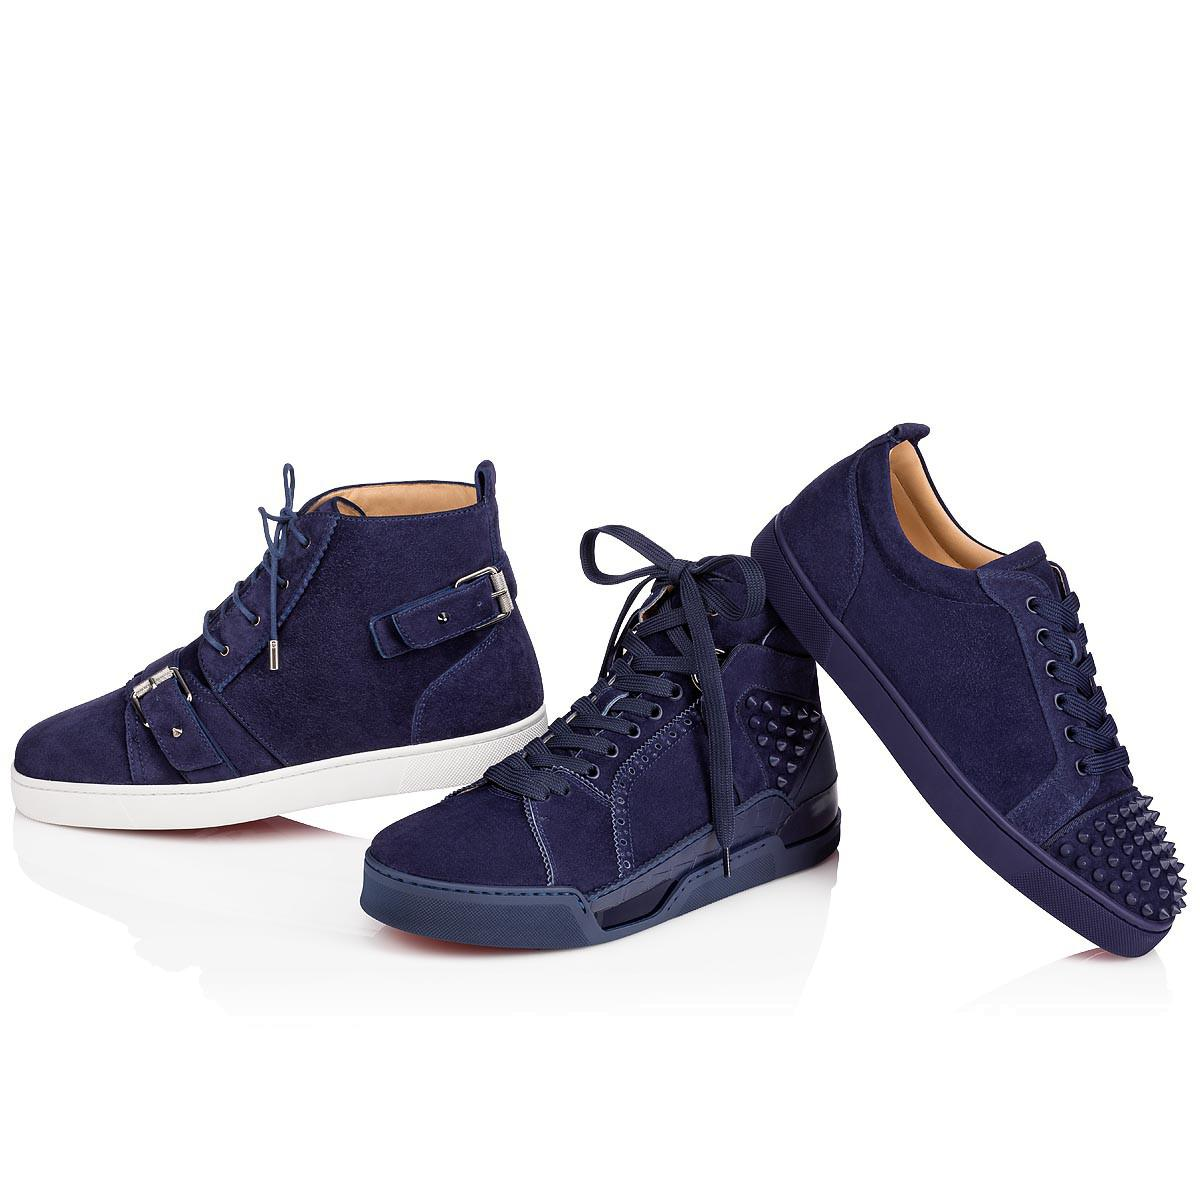 2a3e3b8243db ... high top sneakers china blue f8e8f 2db58  coupon code for lyst christian  louboutin nono strap flat in blue for men 0857c edf2d